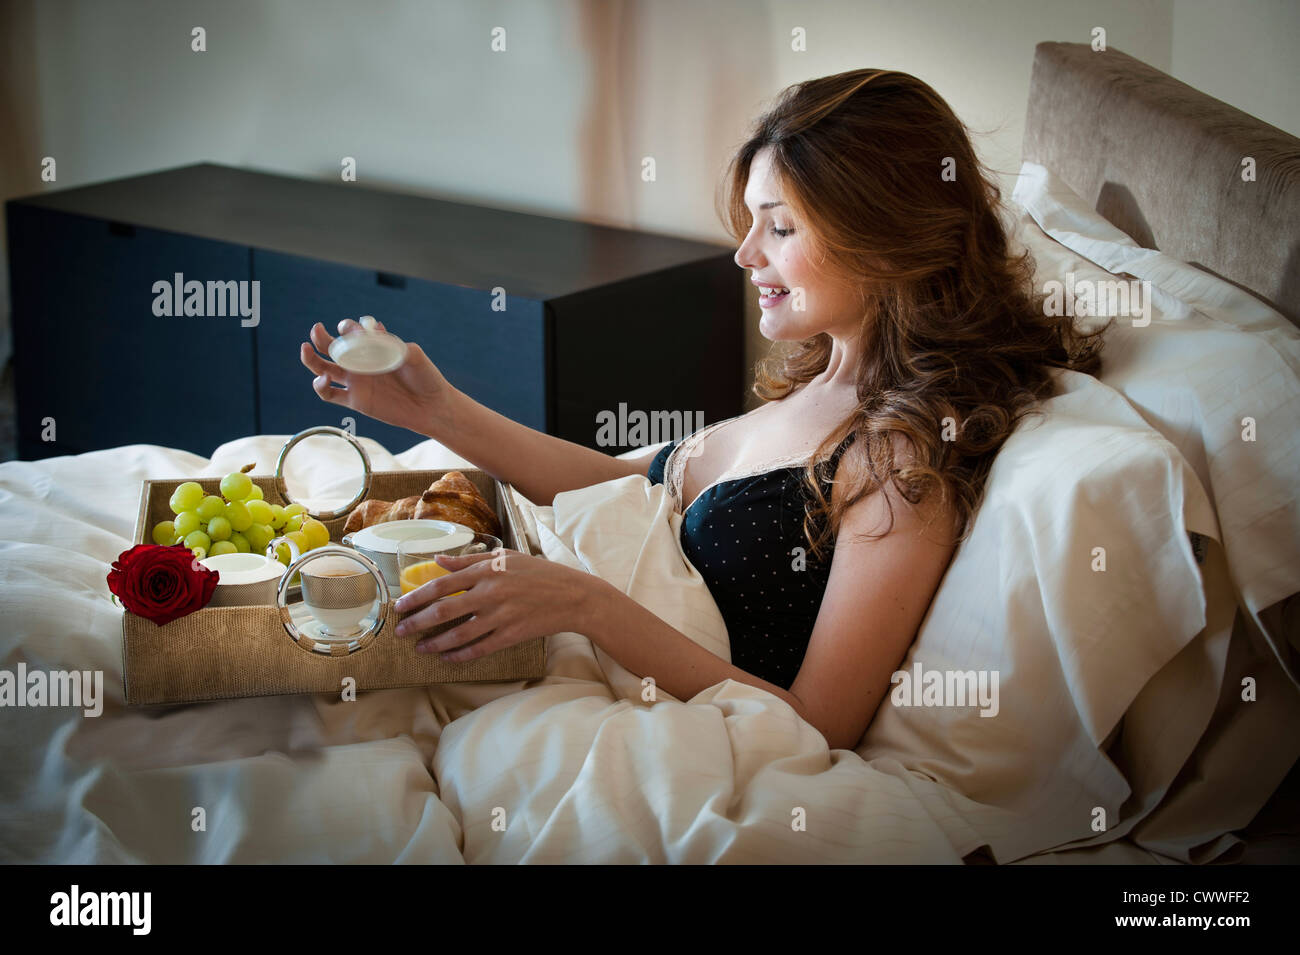 Woman eating breakfast in bed Photo Stock